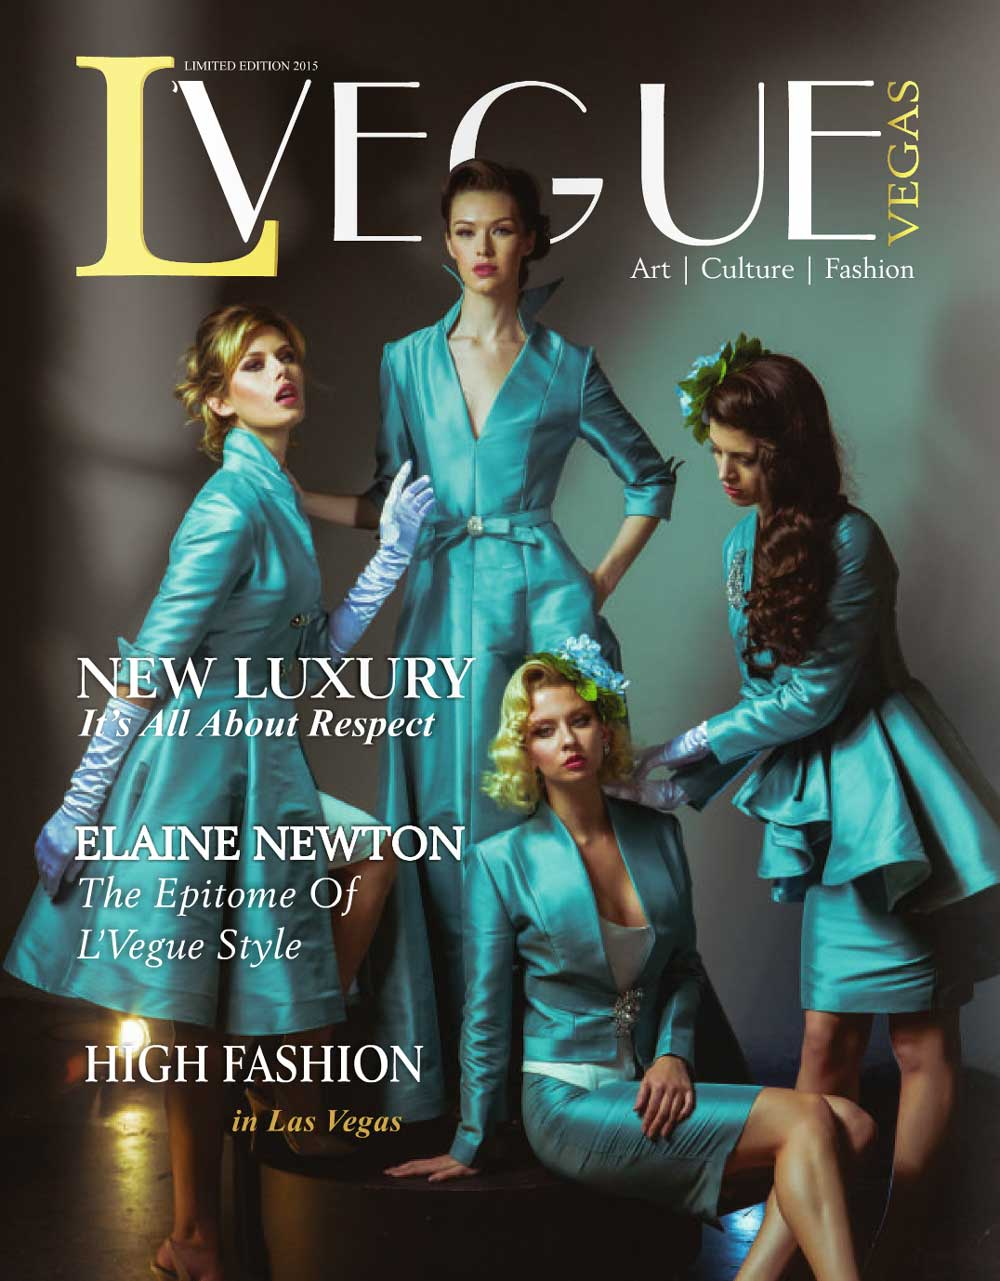 L'Vegue Magazine July 2015 - The Spirituality of Art featuring Dorit Schwartz